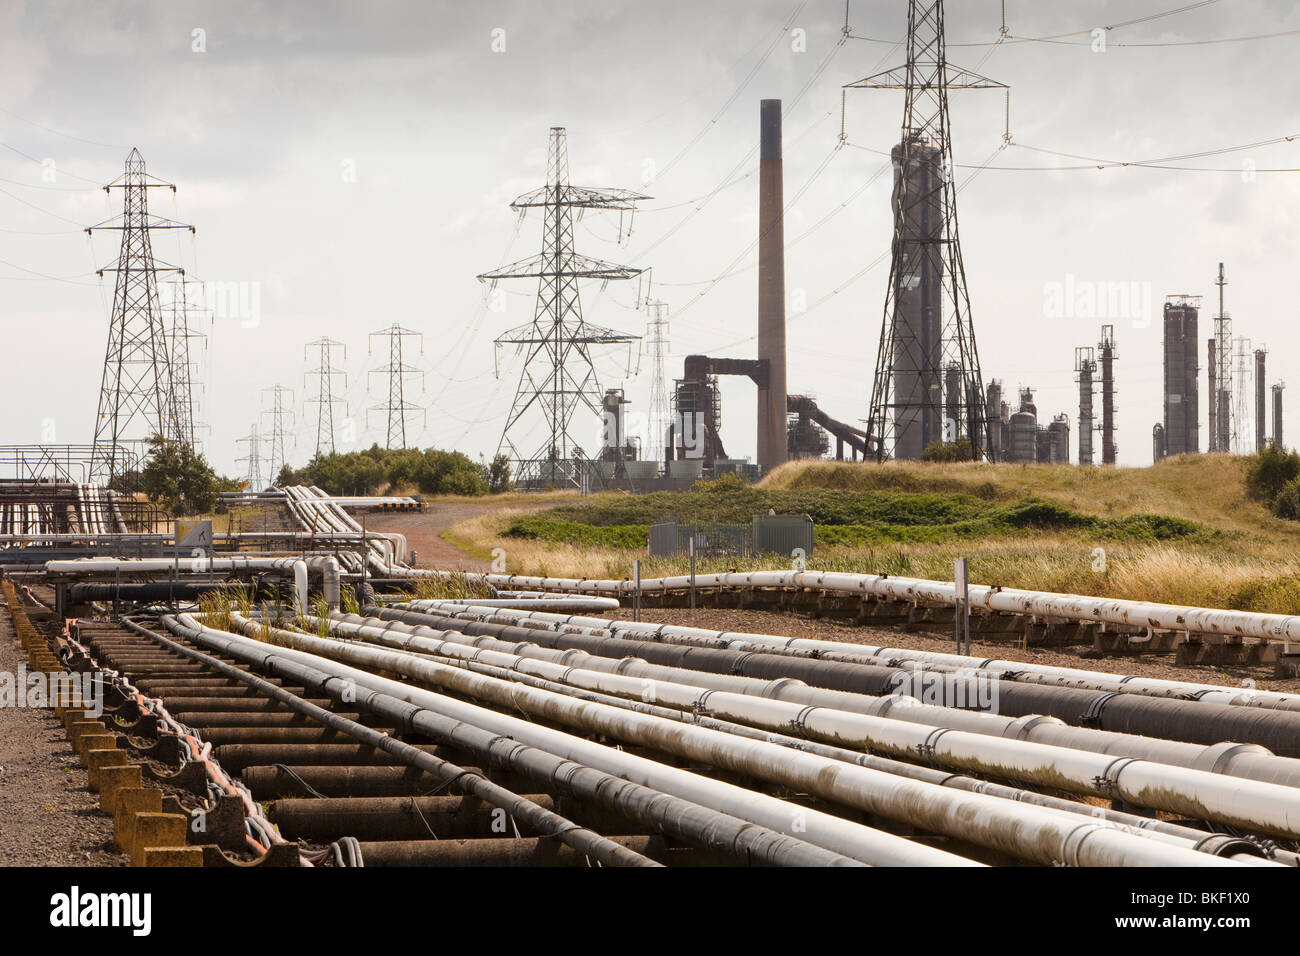 Heavy industry on Teeside, North East, UK. - Stock Image